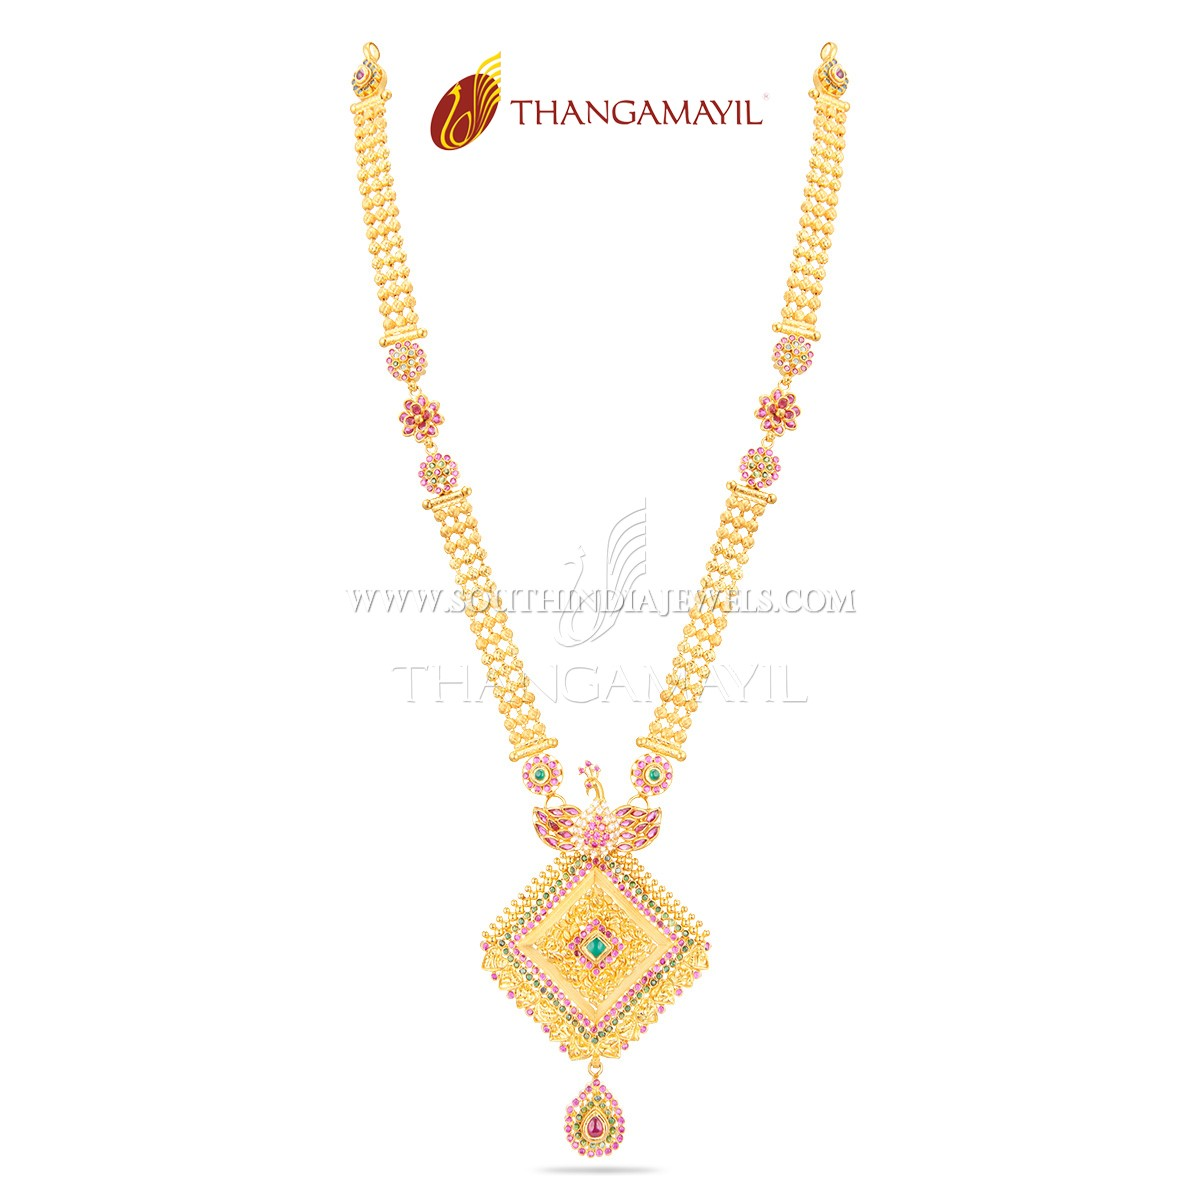 22k Gold Stone Haram From Thangamayil Jewellery